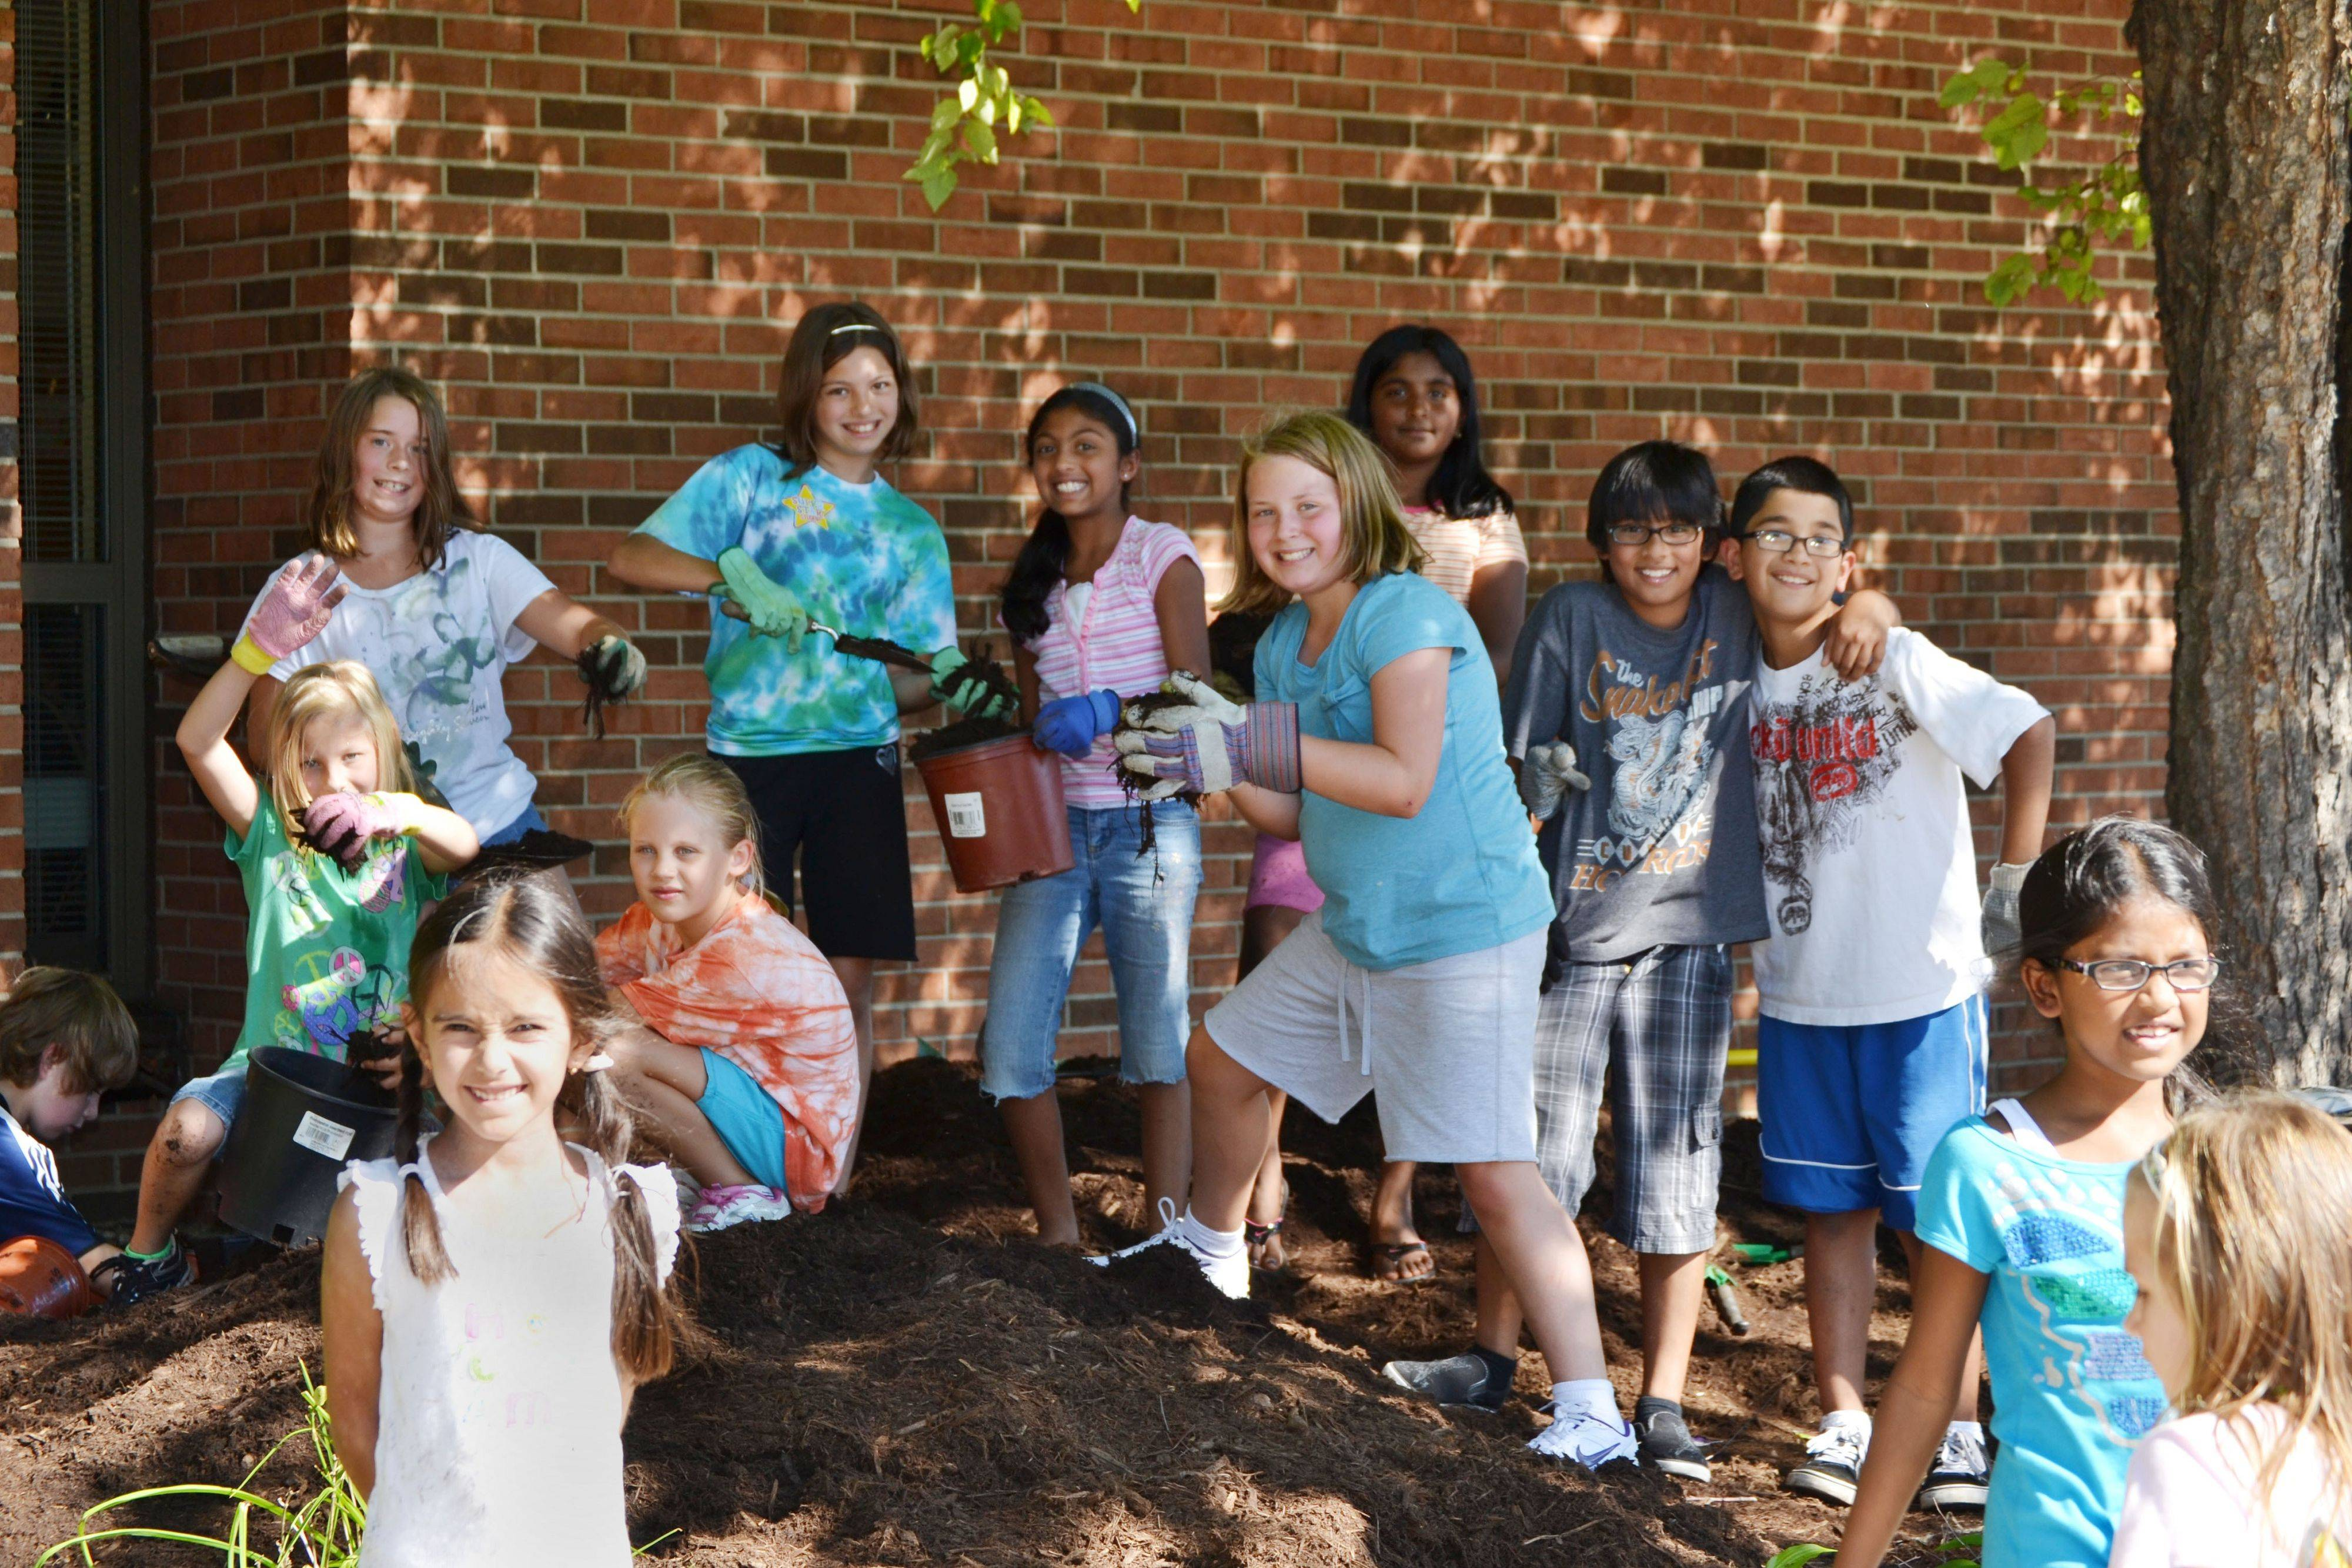 Students at the Hoover Math and Science Academy gathered with parents and community members last month to plant $4,000 worth of donations from Lowe's in Schaumburg before it closed its doors.